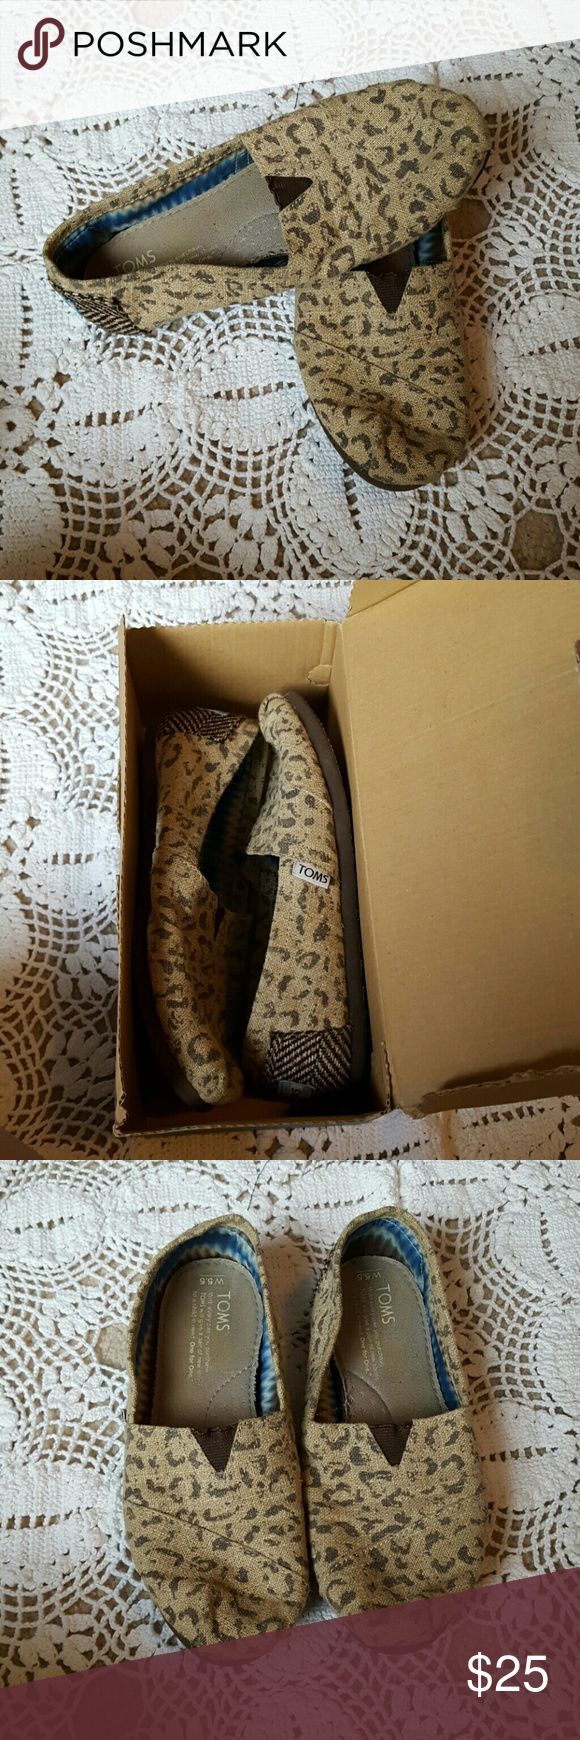 Snow Leopard Toms Snow Leopard Toms. Brand new W/box TOMS Shoes Flats & Loafers